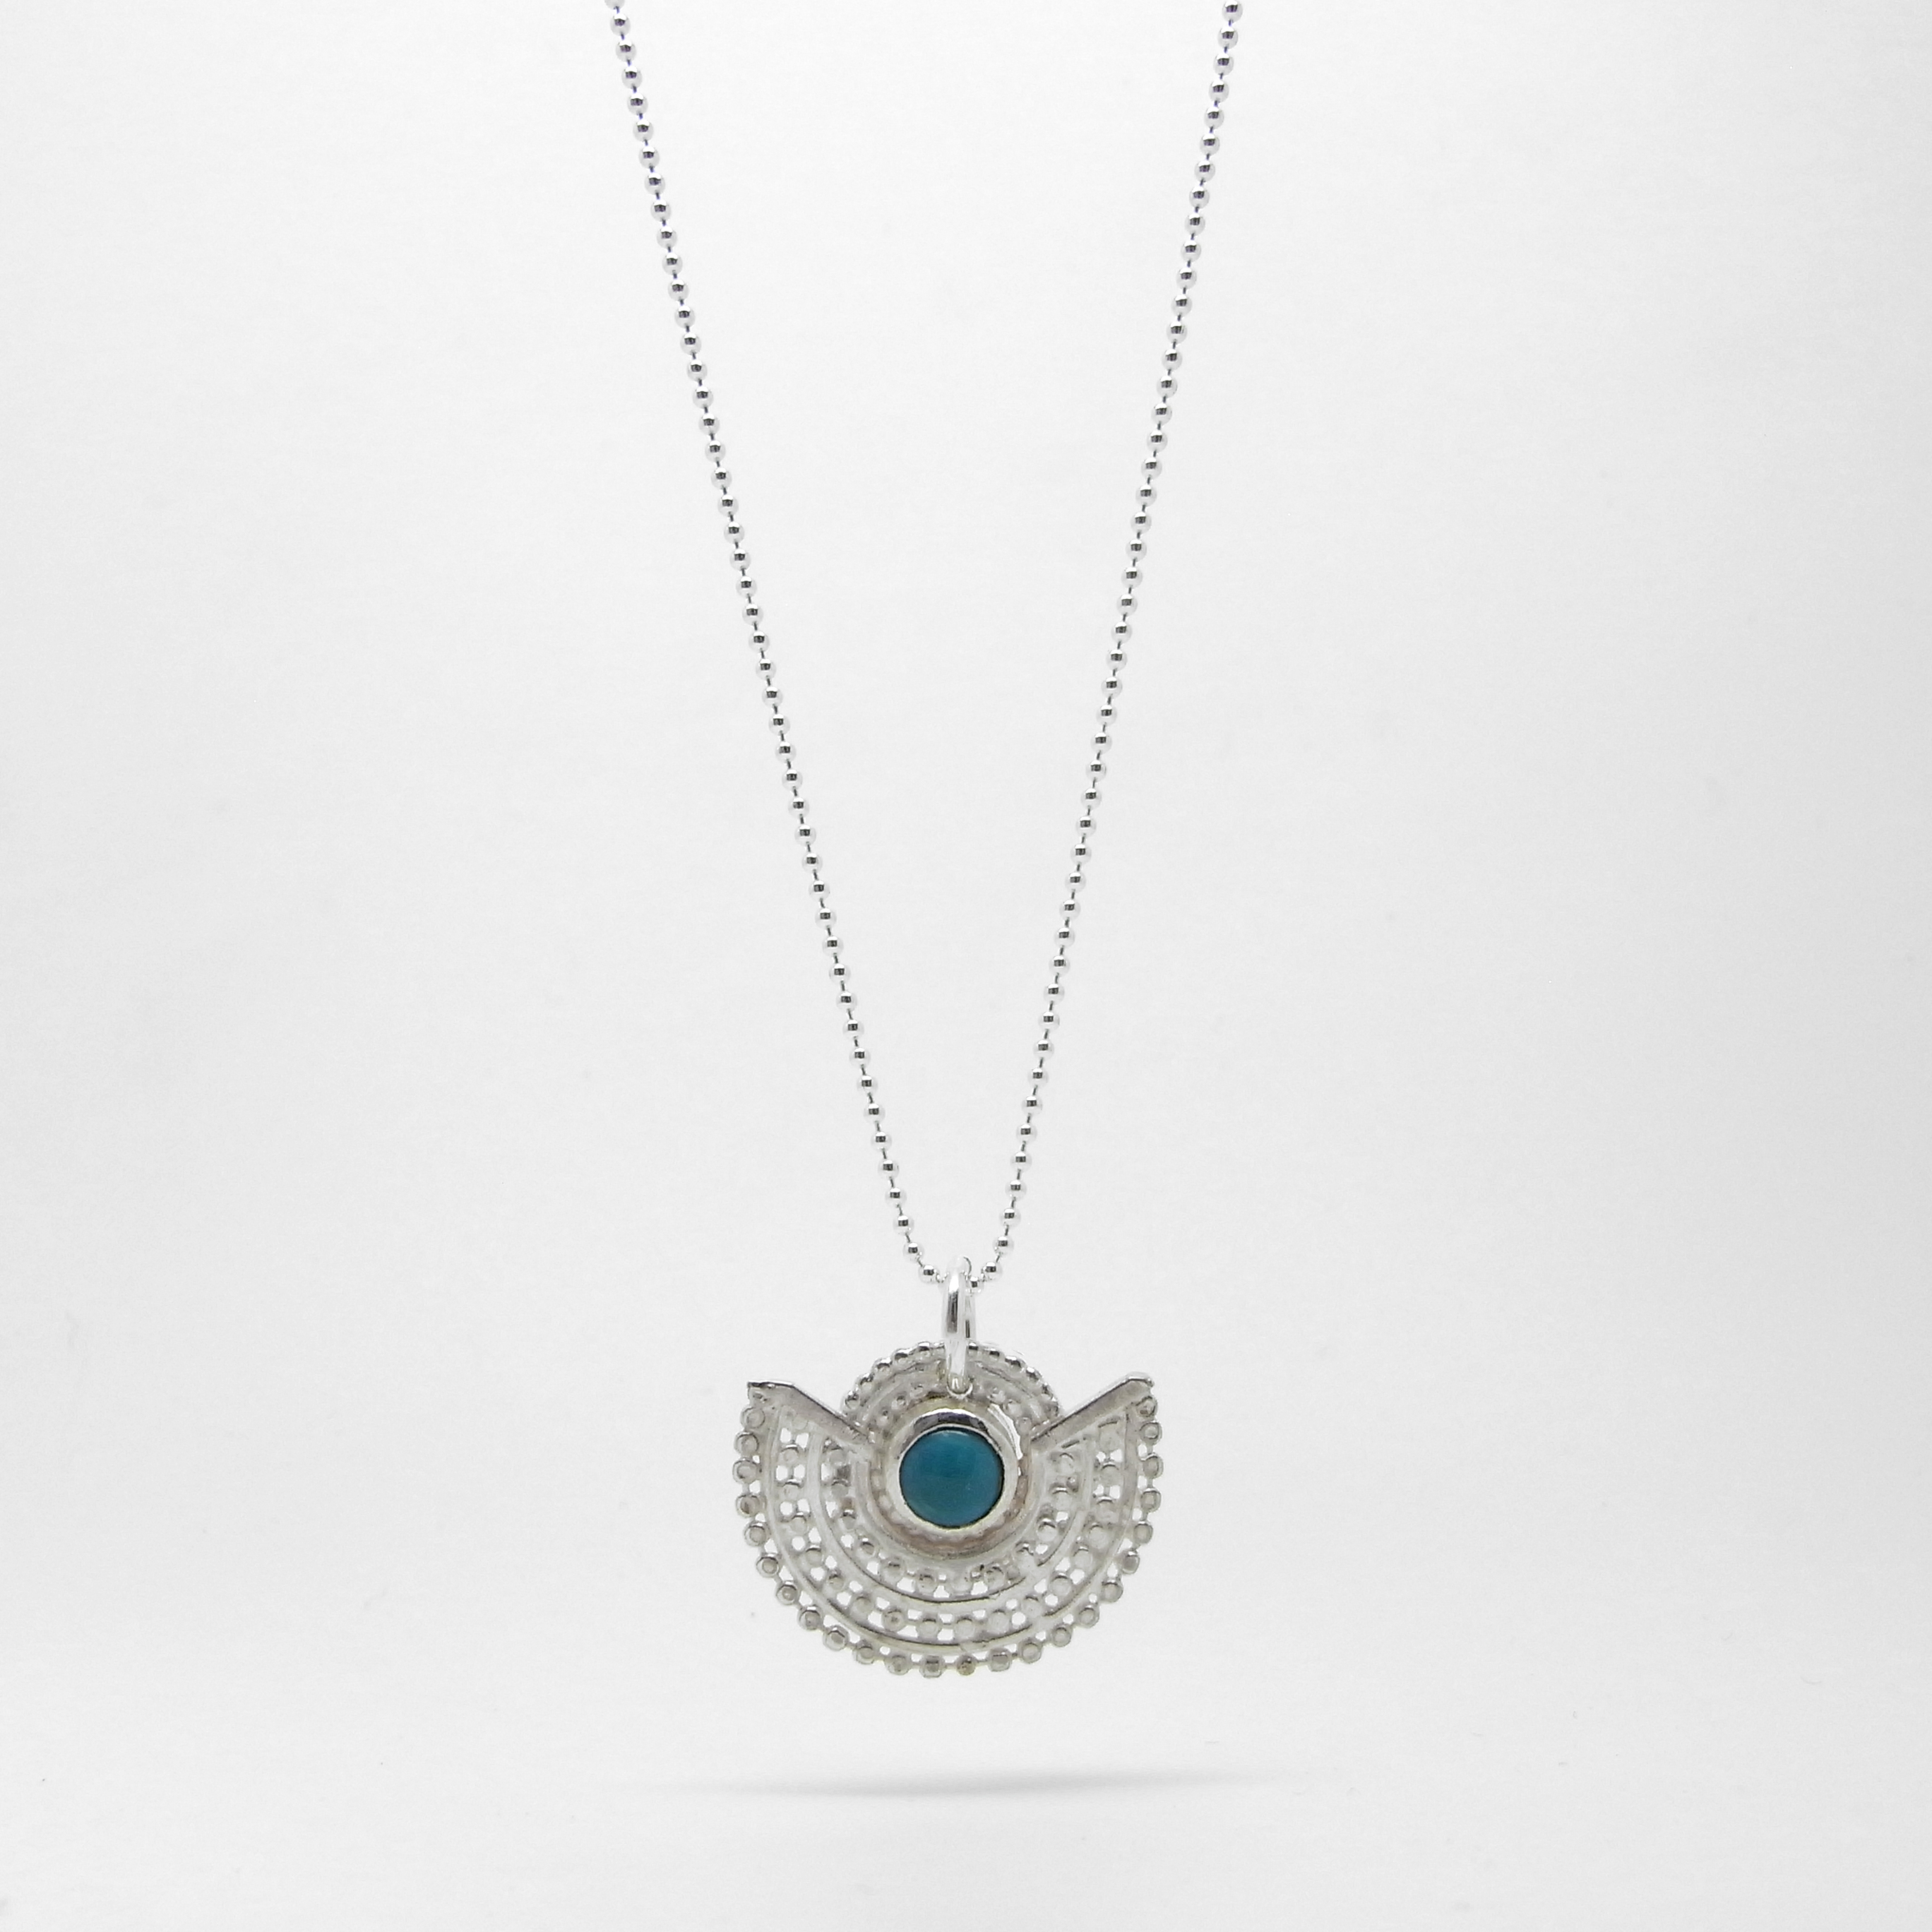 Deco Necklace - Turquoise S